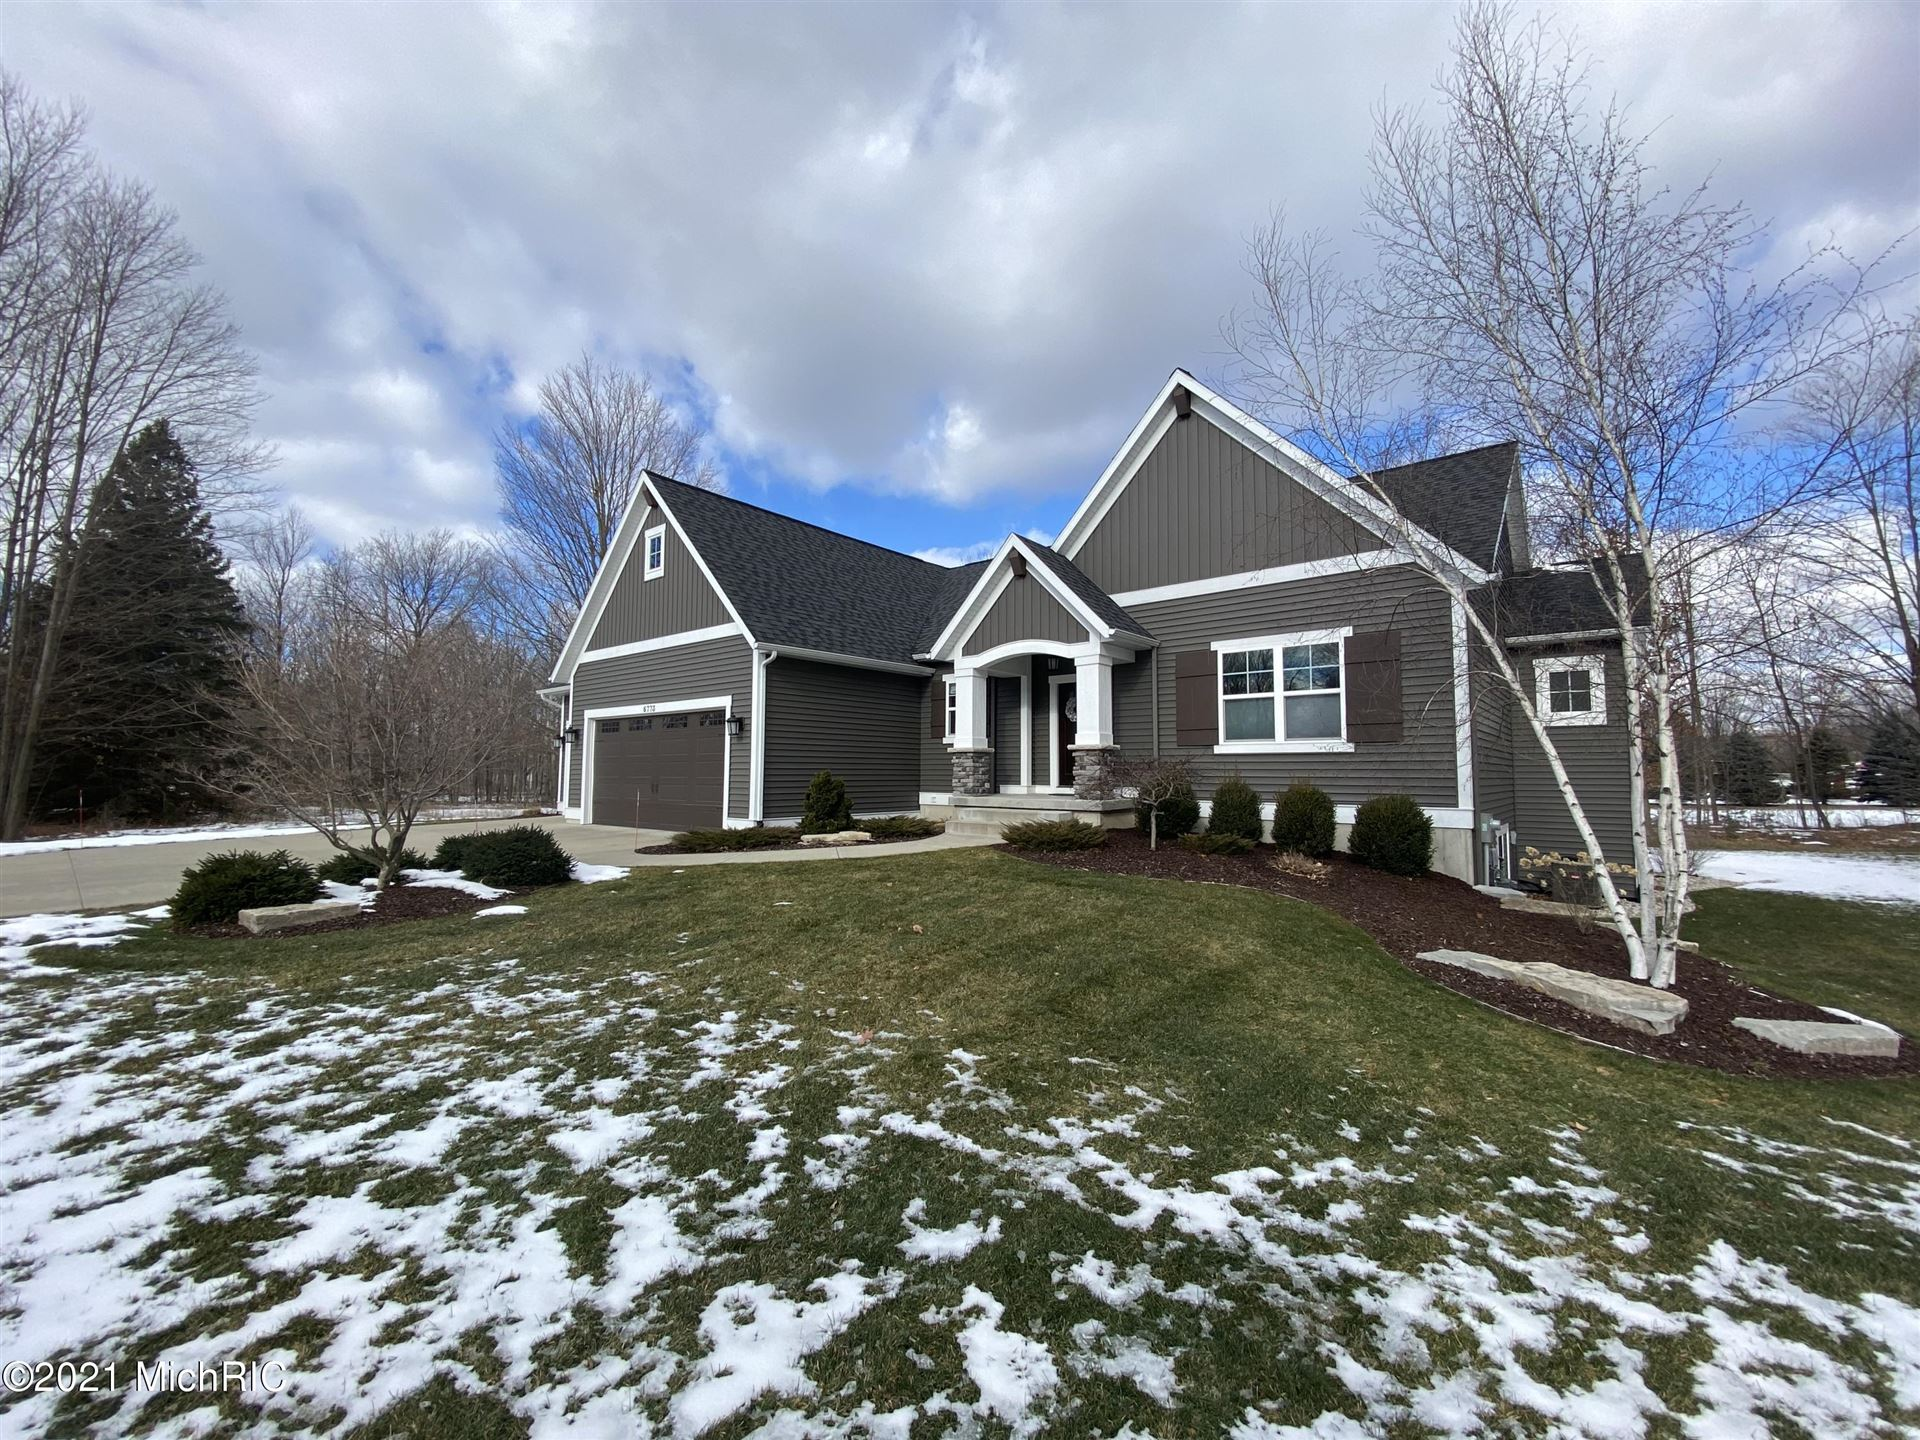 6773 Wood Lane, Allendale, MI 49401 - MLS#: 21002522